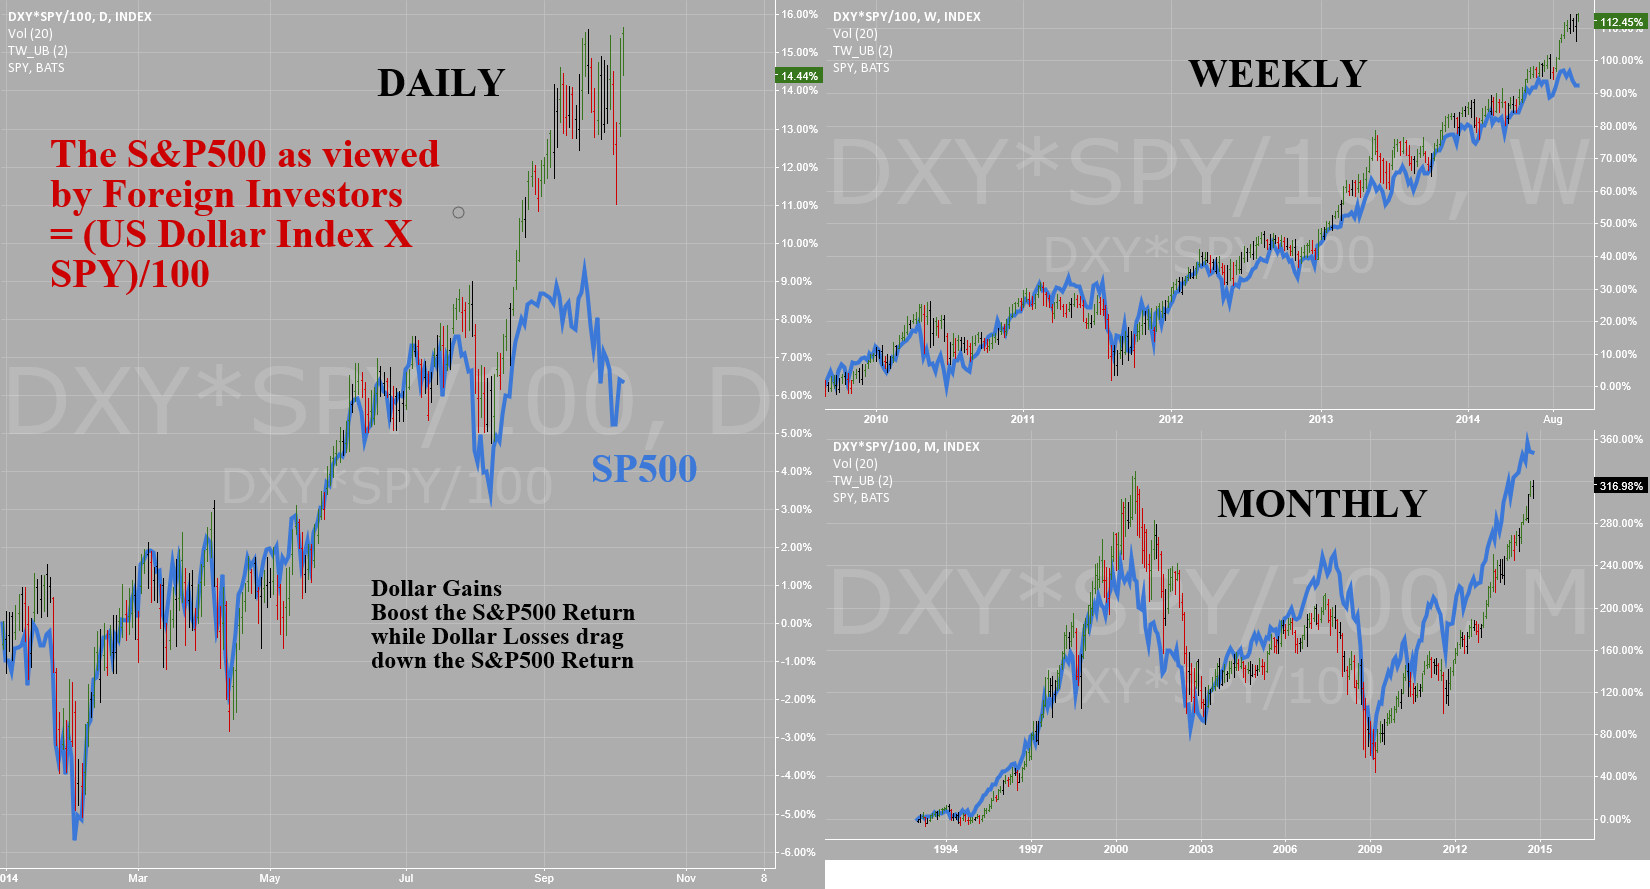 SP500 -SPY - ETF ADJUSTED FOR THE US DOLLAR - Daily/Wkly/Monthly